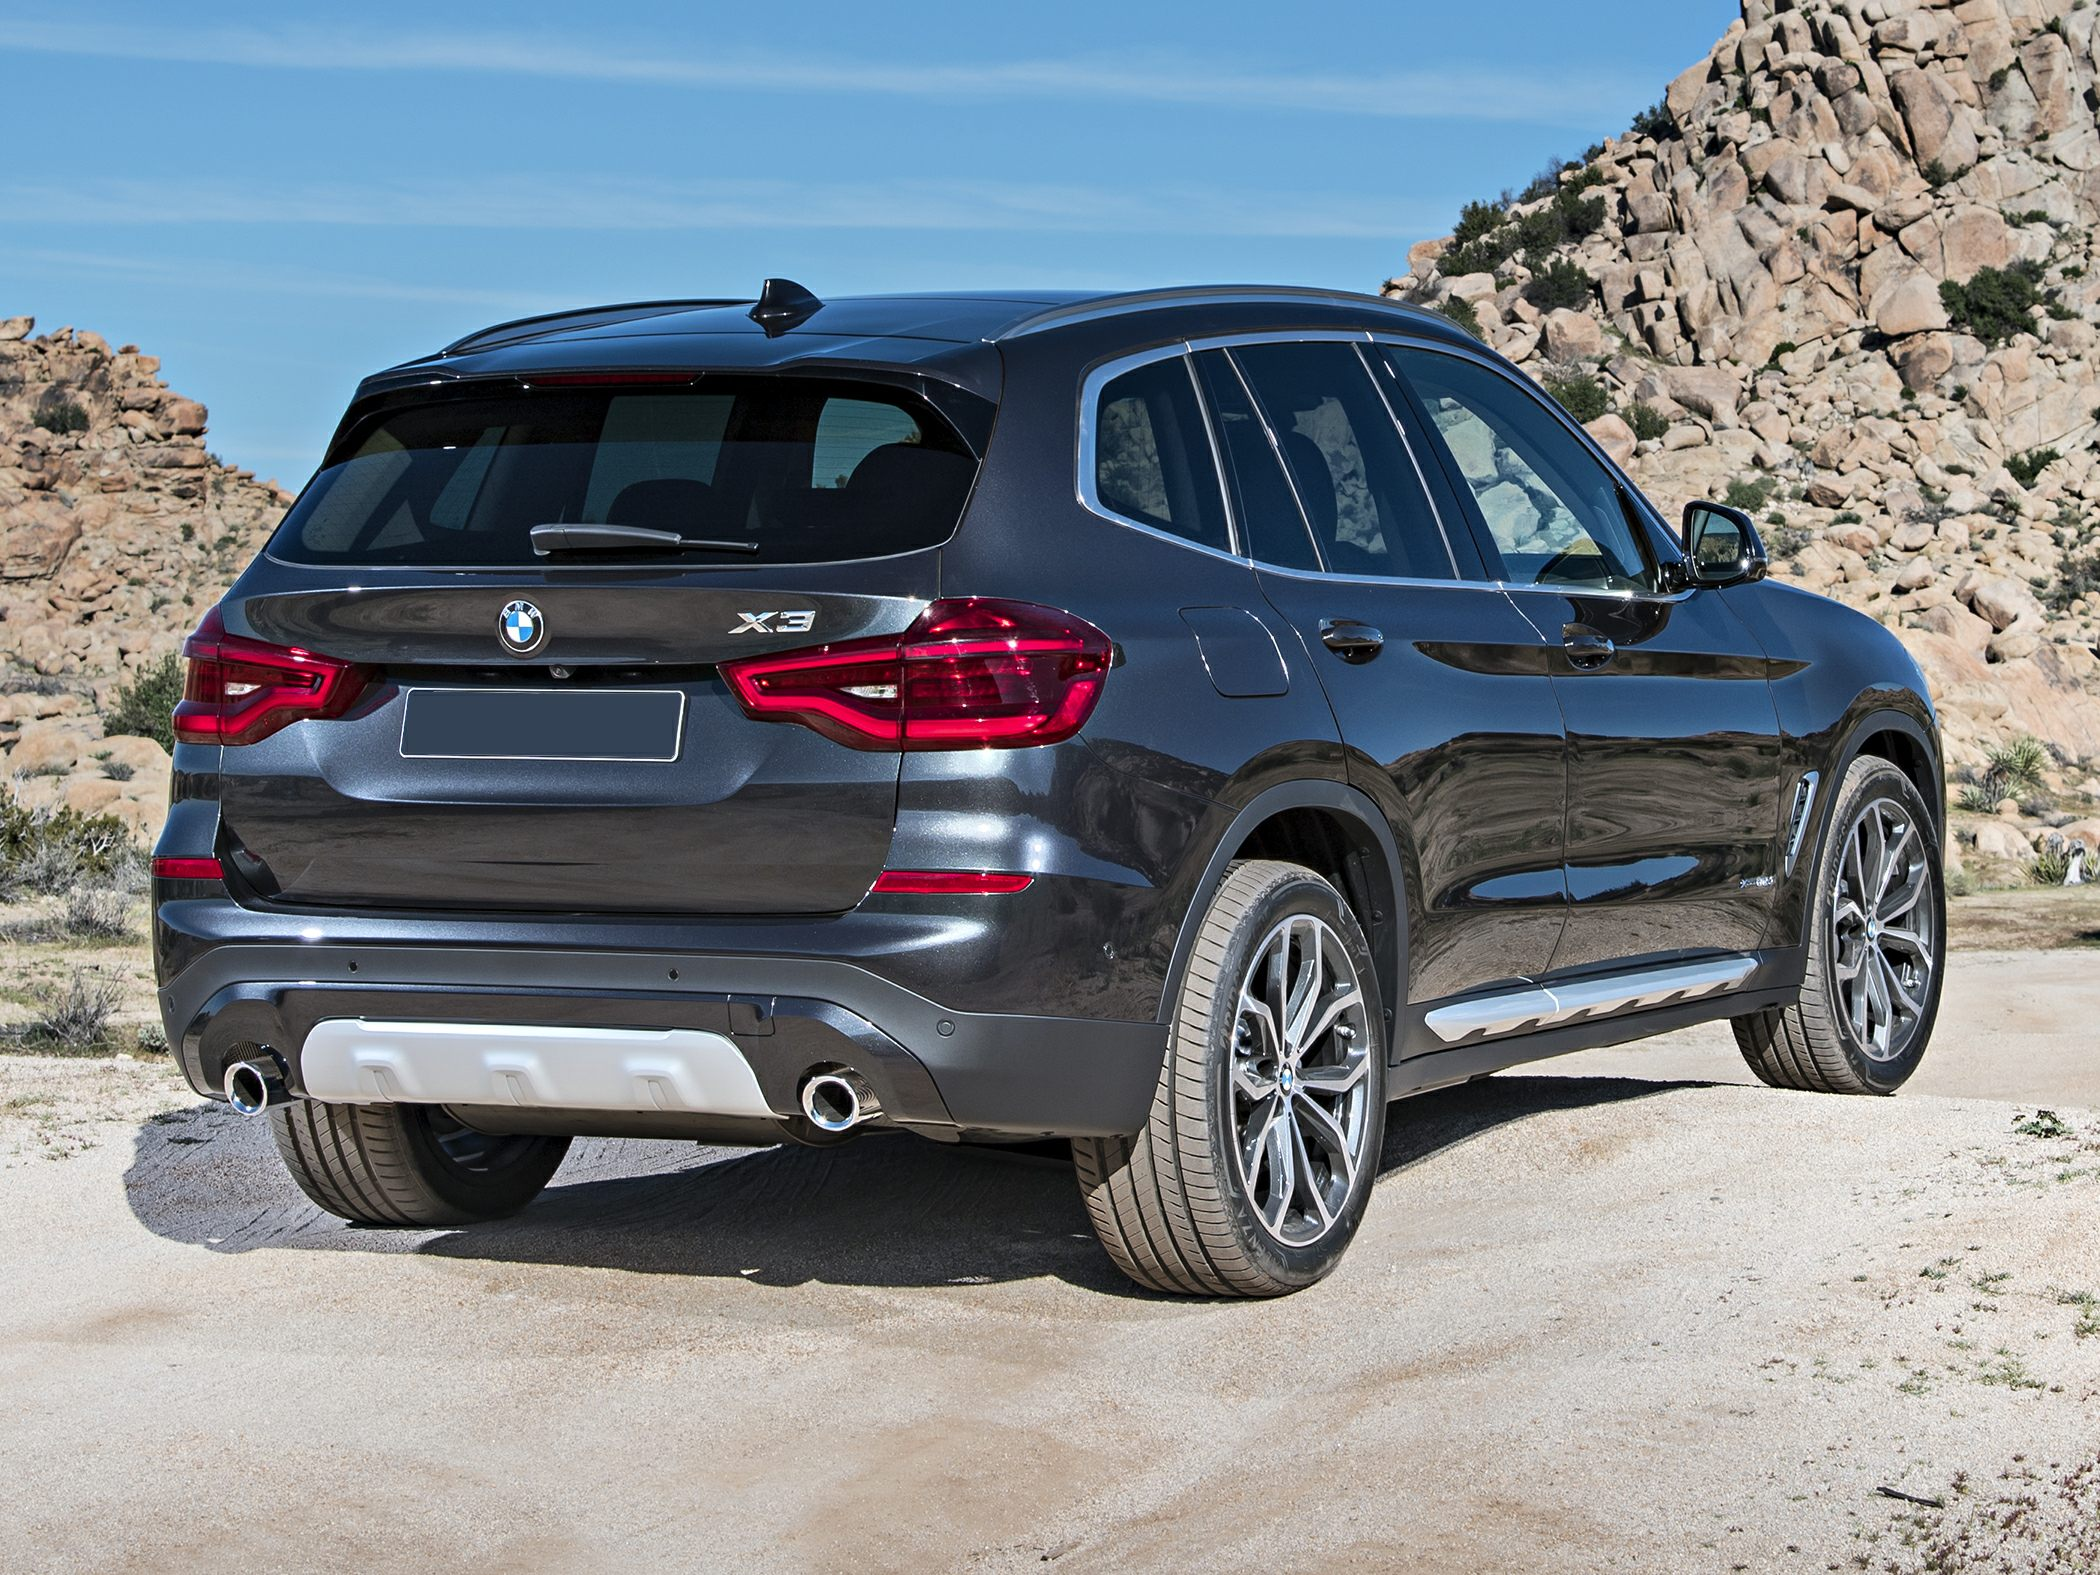 Acura Lease Deals >> See 2018 BMW X3 Color Options - CarsDirect